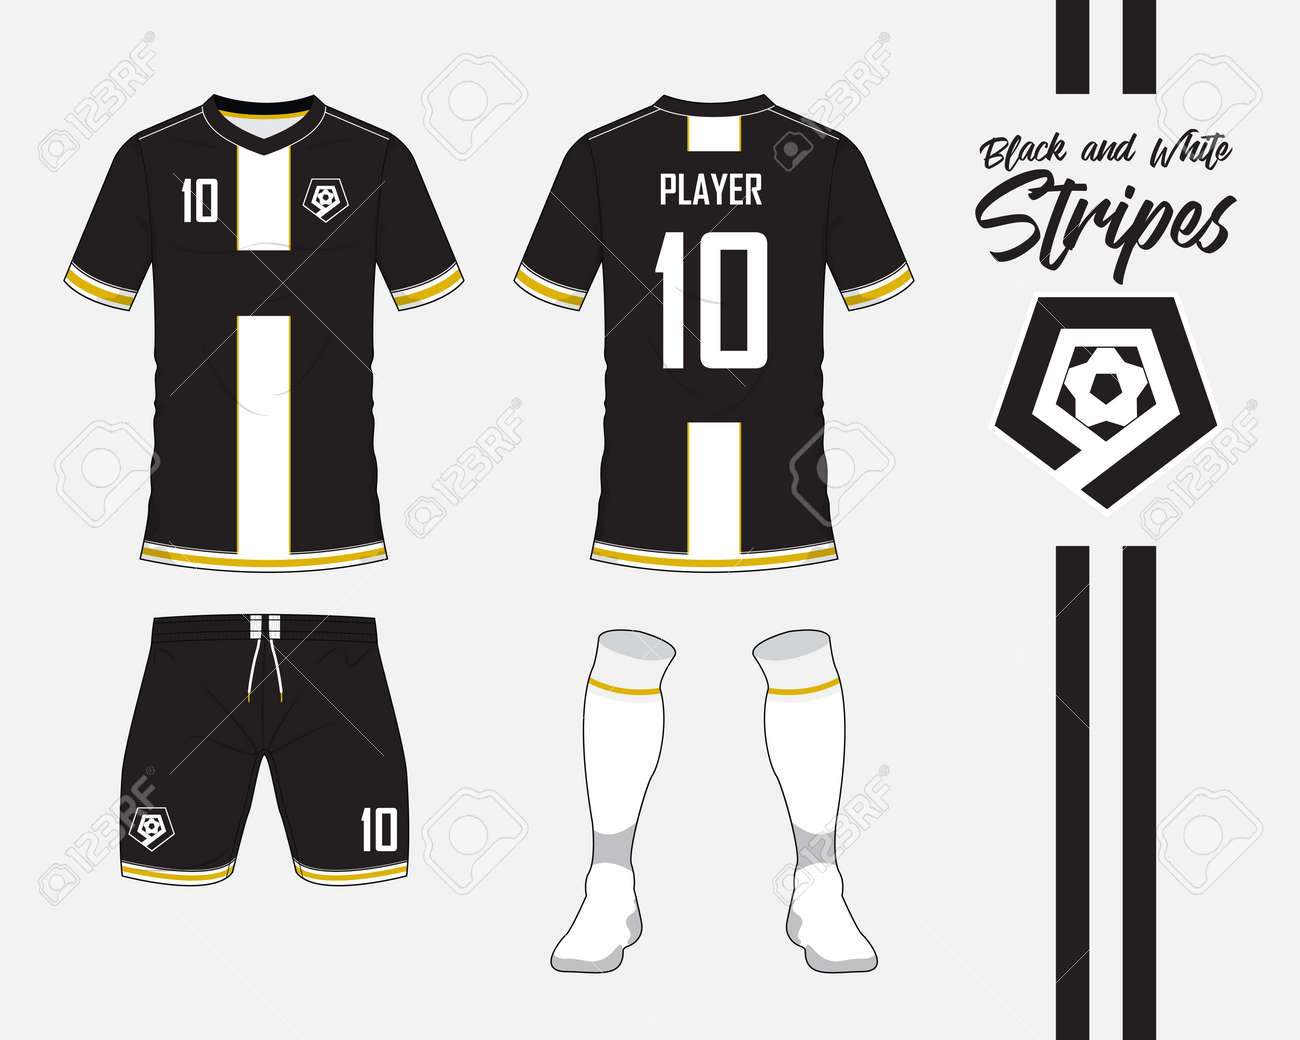 6e74a38d558a Soccer jersey or football kit collection in black and white stripes  concept. Football shirt mock